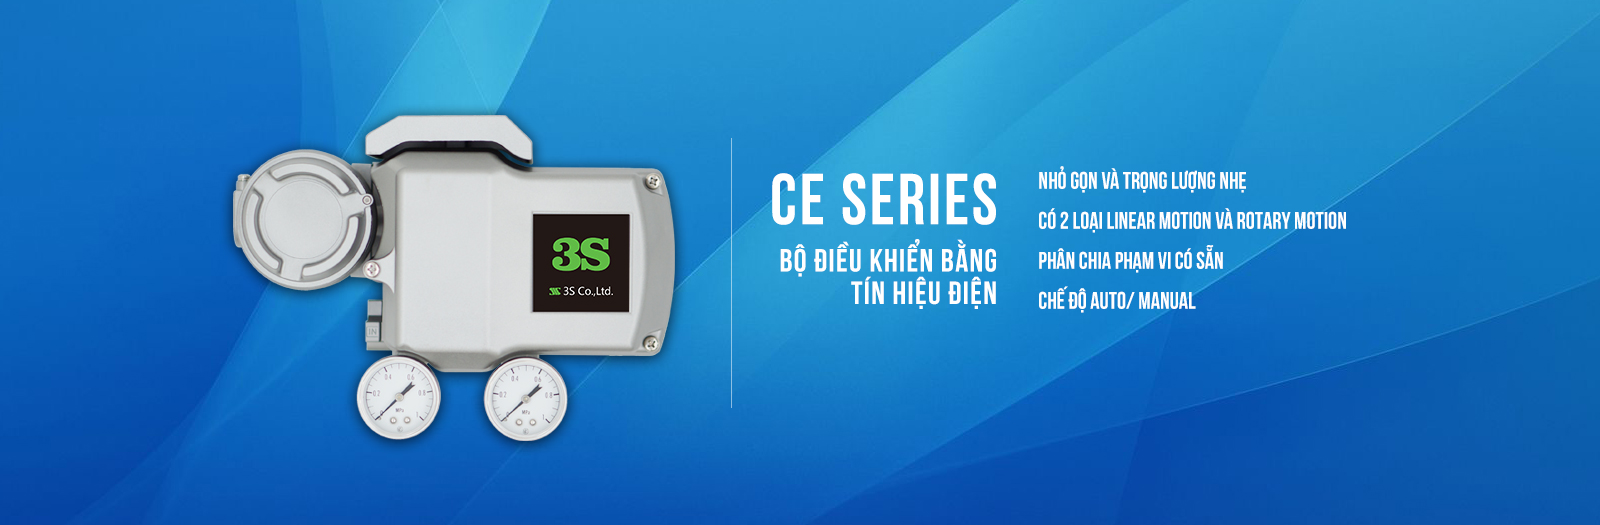 CEseries